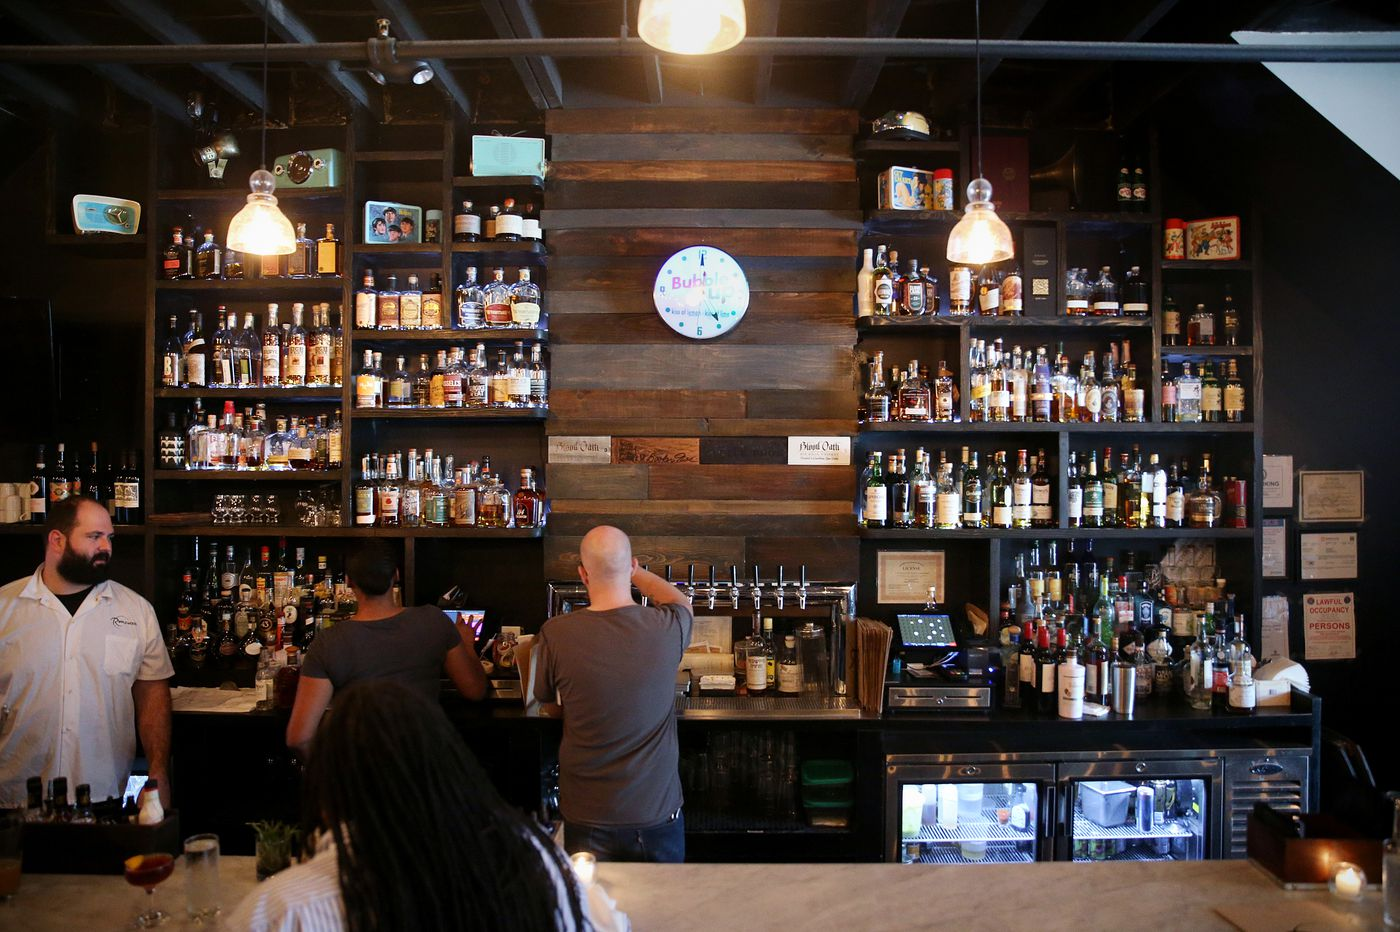 Pennsylvania's wet towns get a little extra cash for hosting liquor licensees